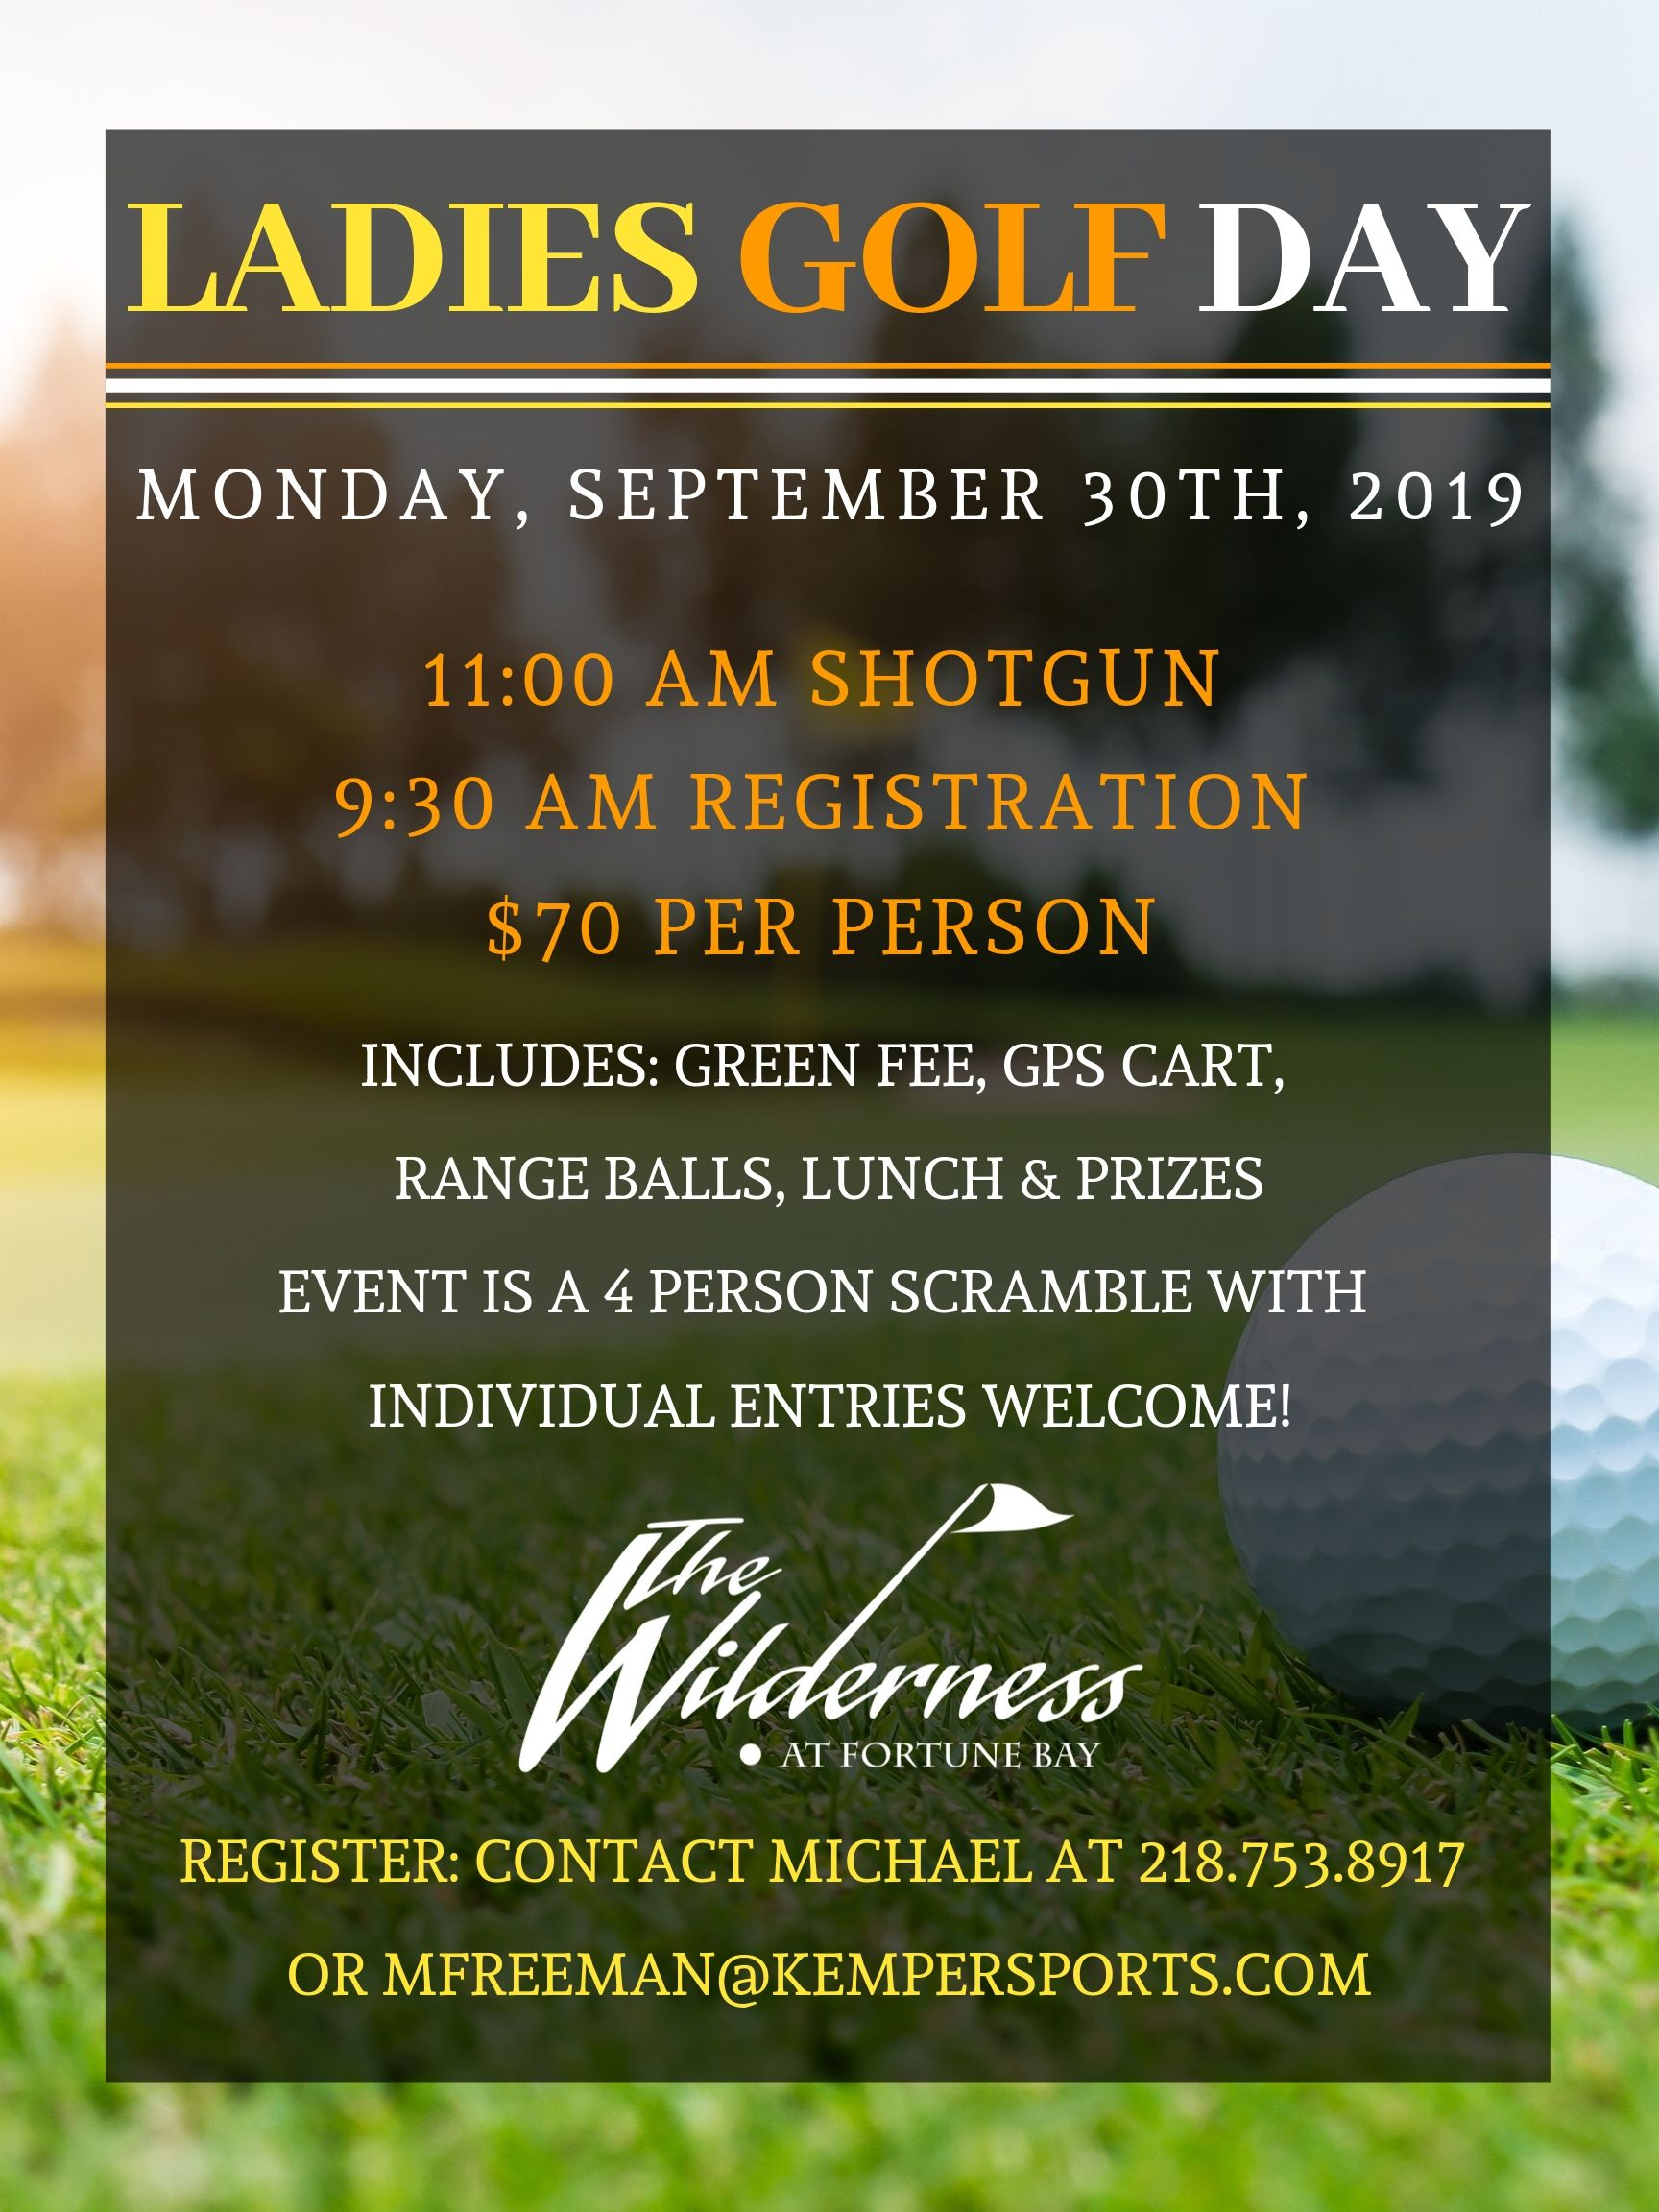 Ladies Golf Day Fall 2019